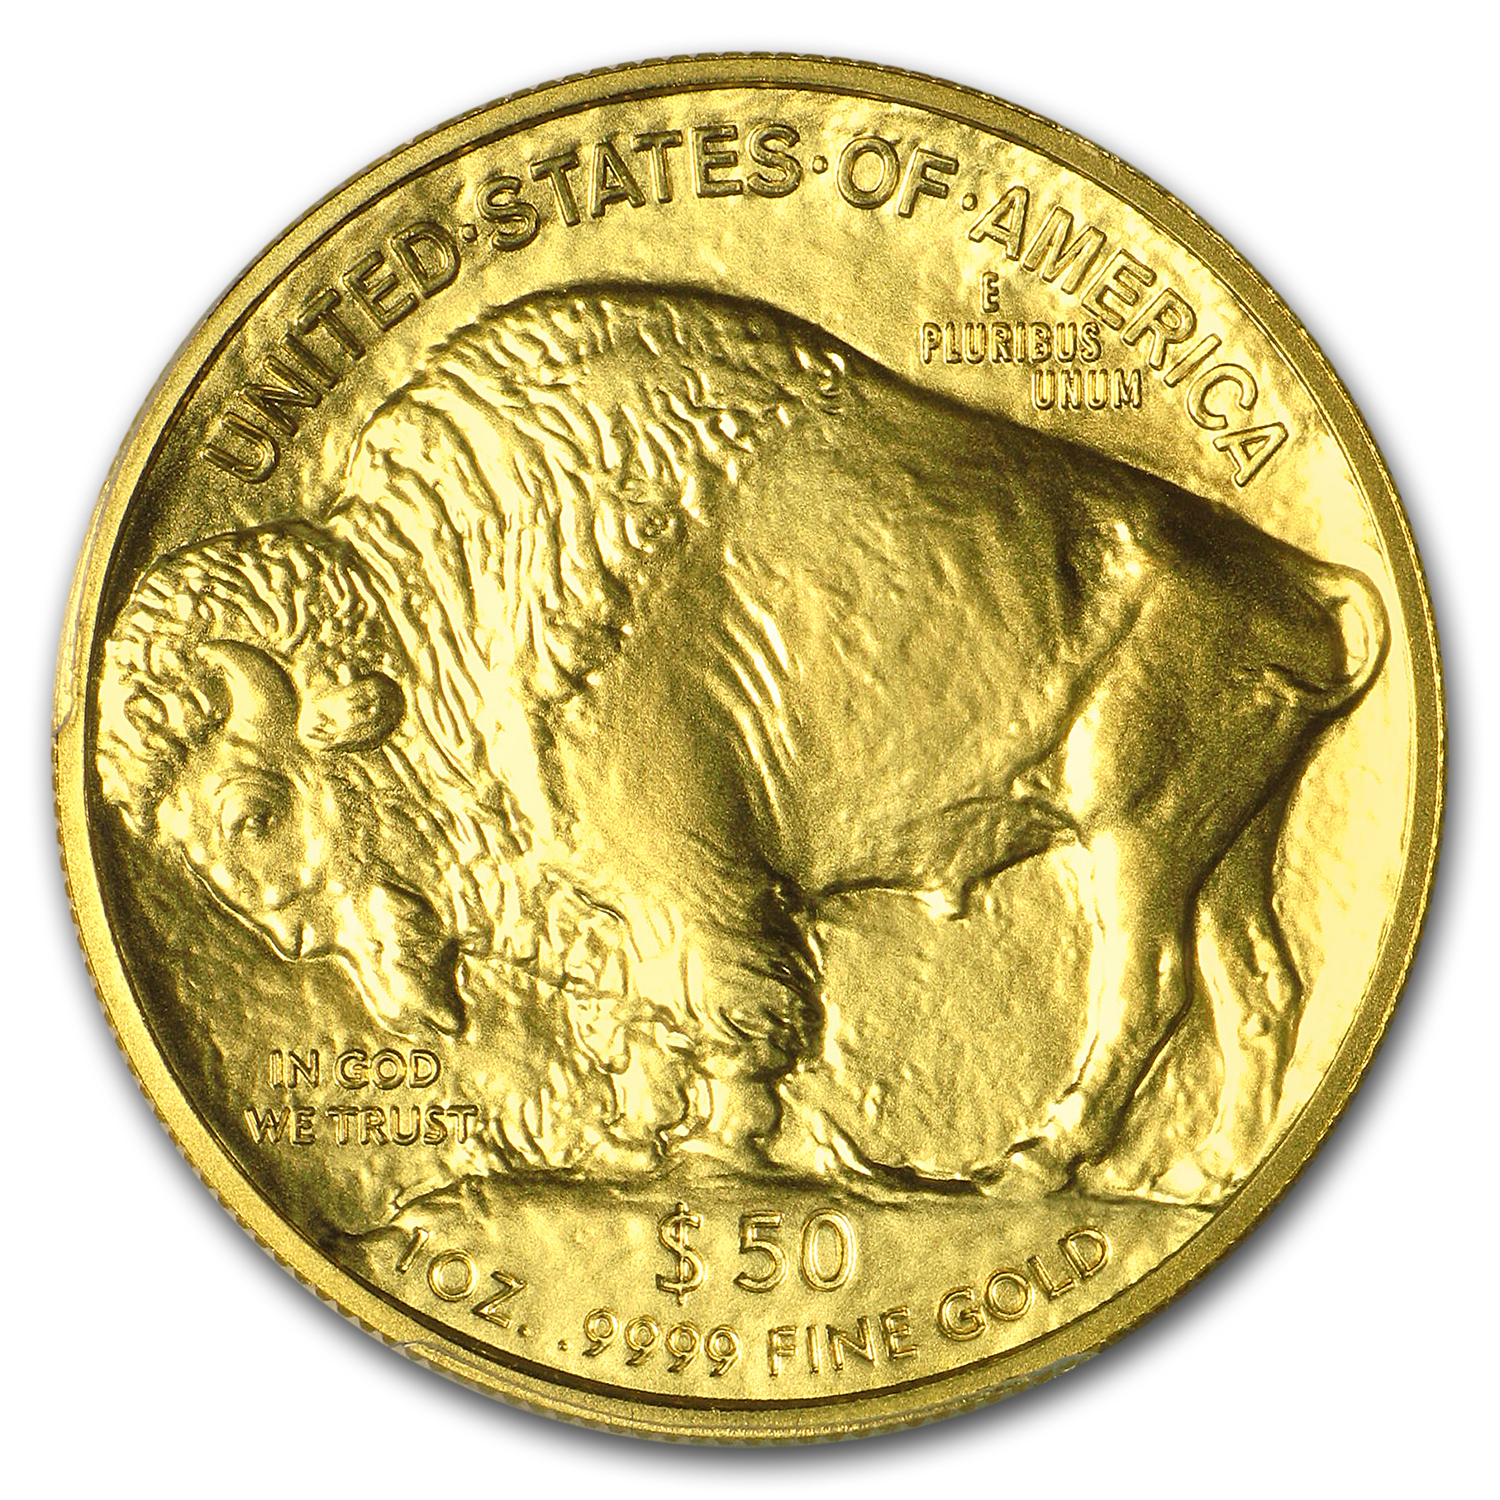 2015 1 oz Gold Buffalo MS-70 PCGS